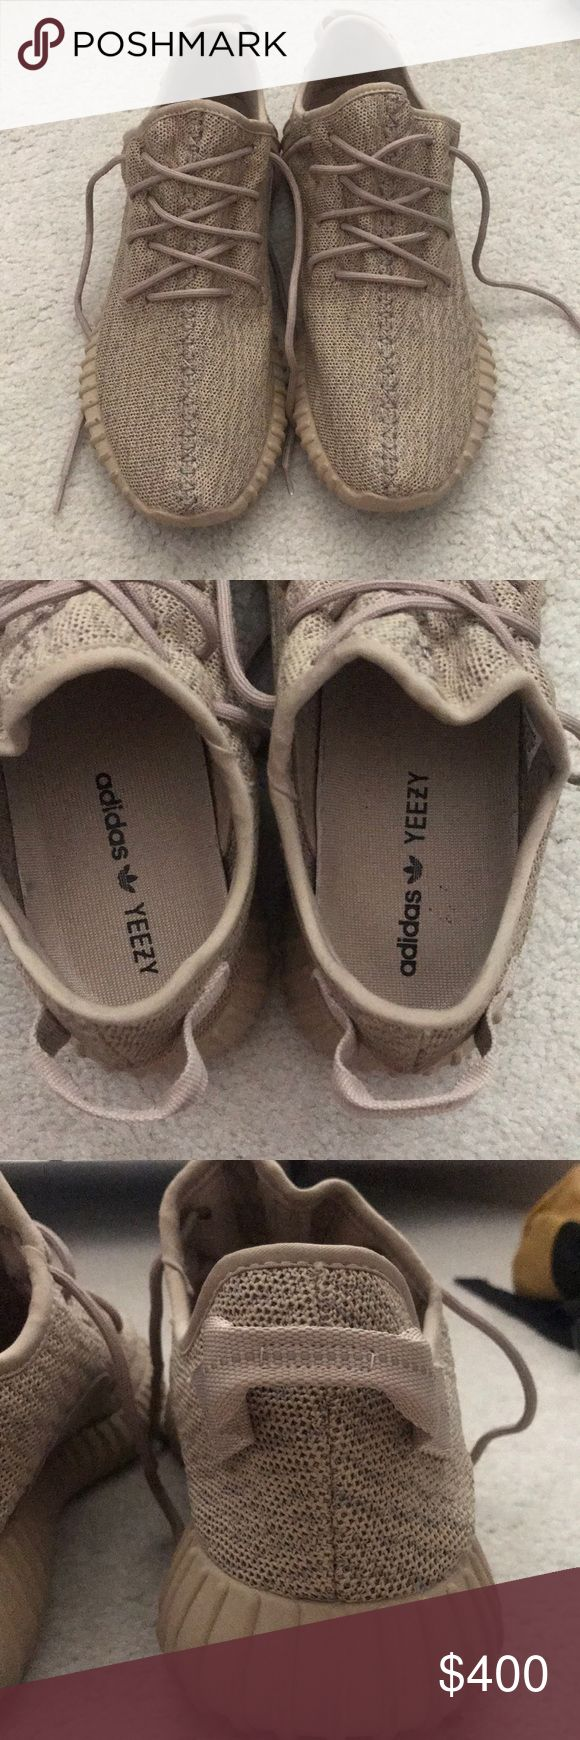 Yeezy v1 Oxford tans Lightly worn. 8/10 condition. Price firm. Will ship out next day. adidas Shoes Sneakers